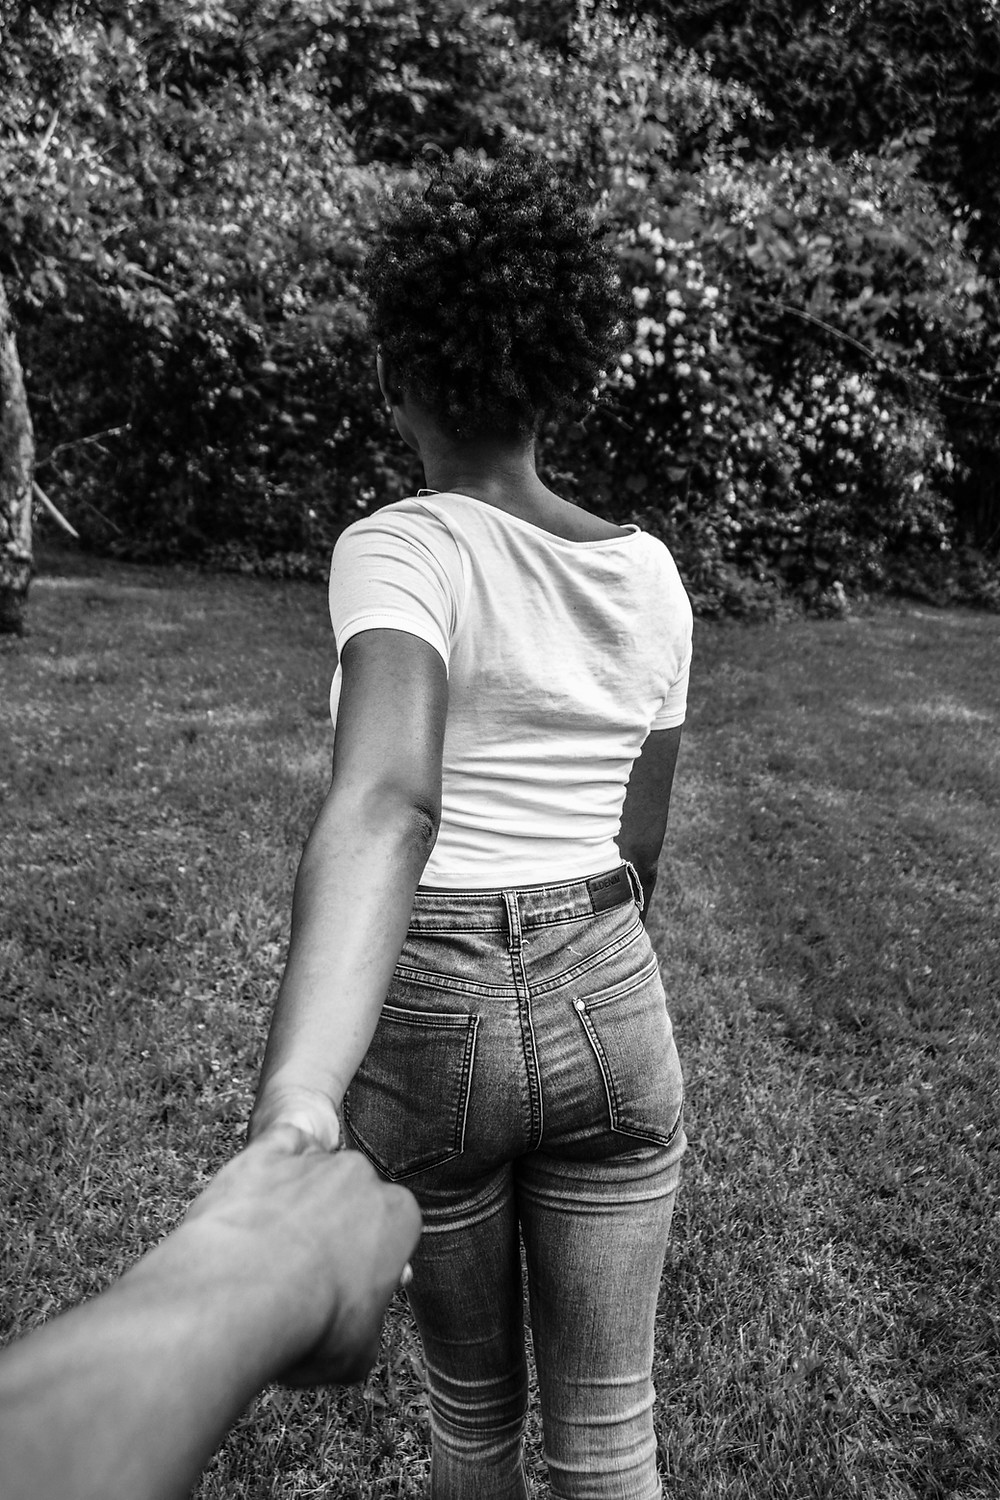 Dating is usually the most exciting part of a young relationship. During this time both parties are simply getting to know each other and the butterflies are just kicking in.